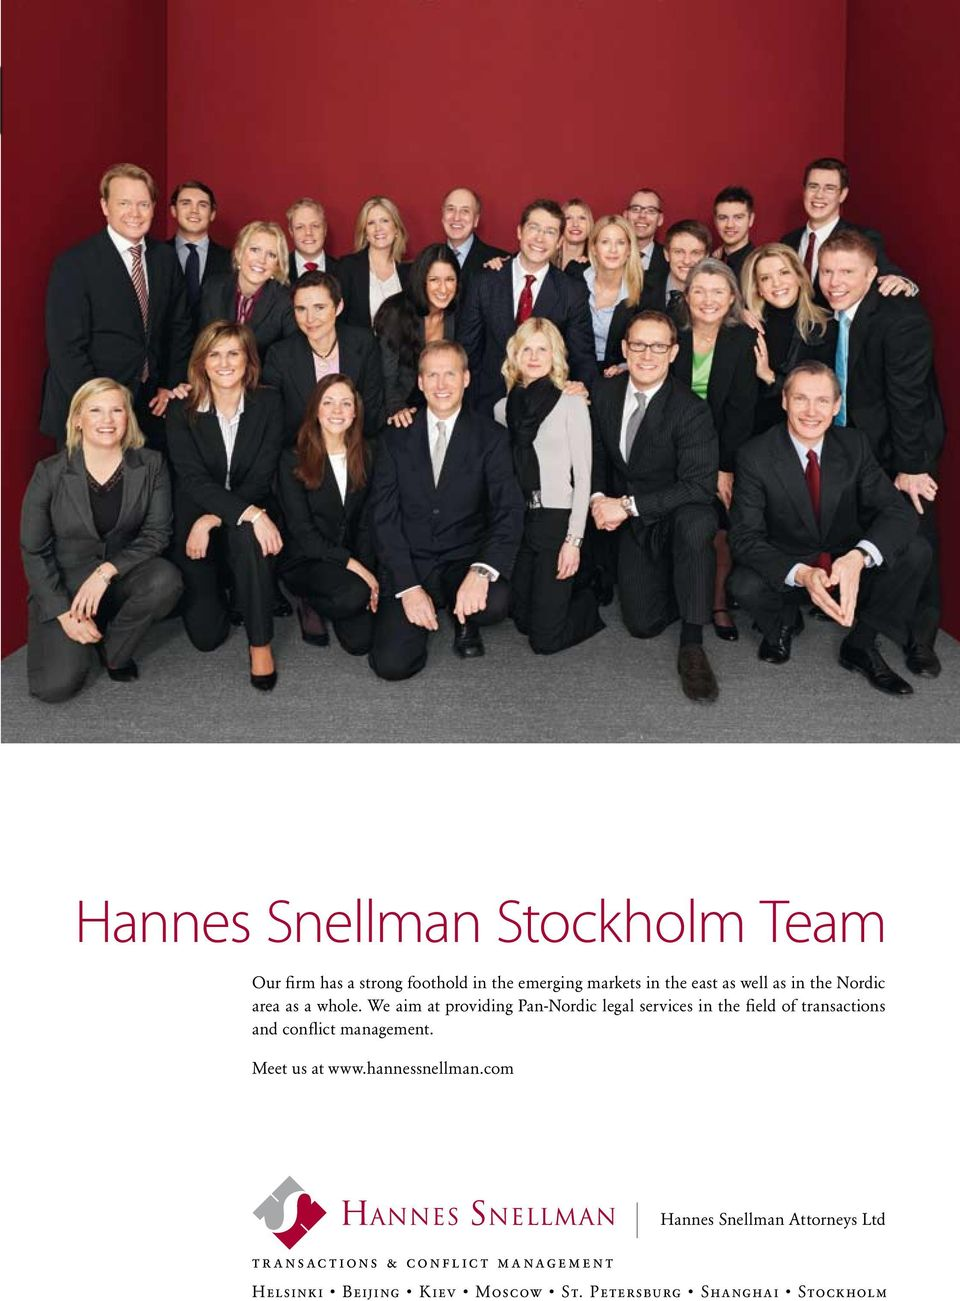 We aim at providing Pan-Nordic legal services in the field of transactions and conflict management.